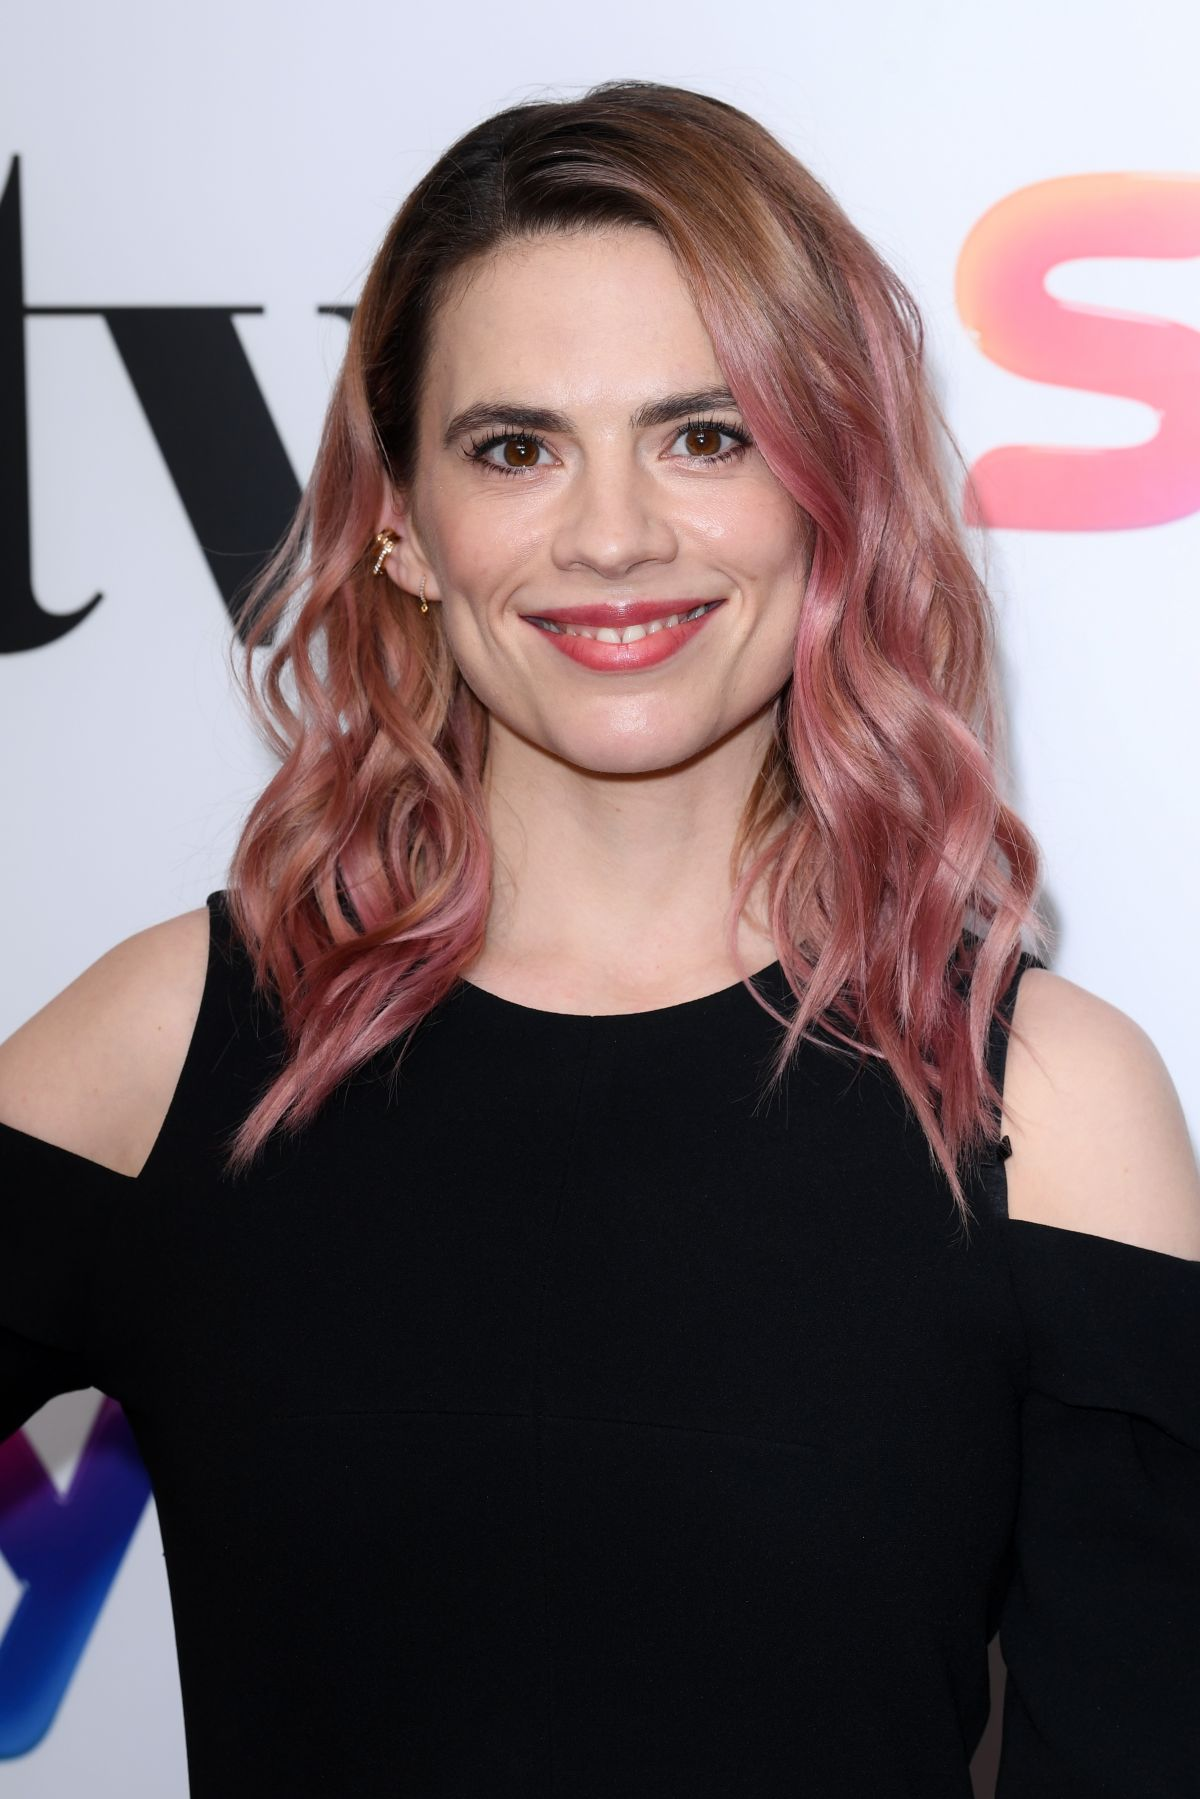 HAYLEY ATWELL at Women in Film and Television Awards in